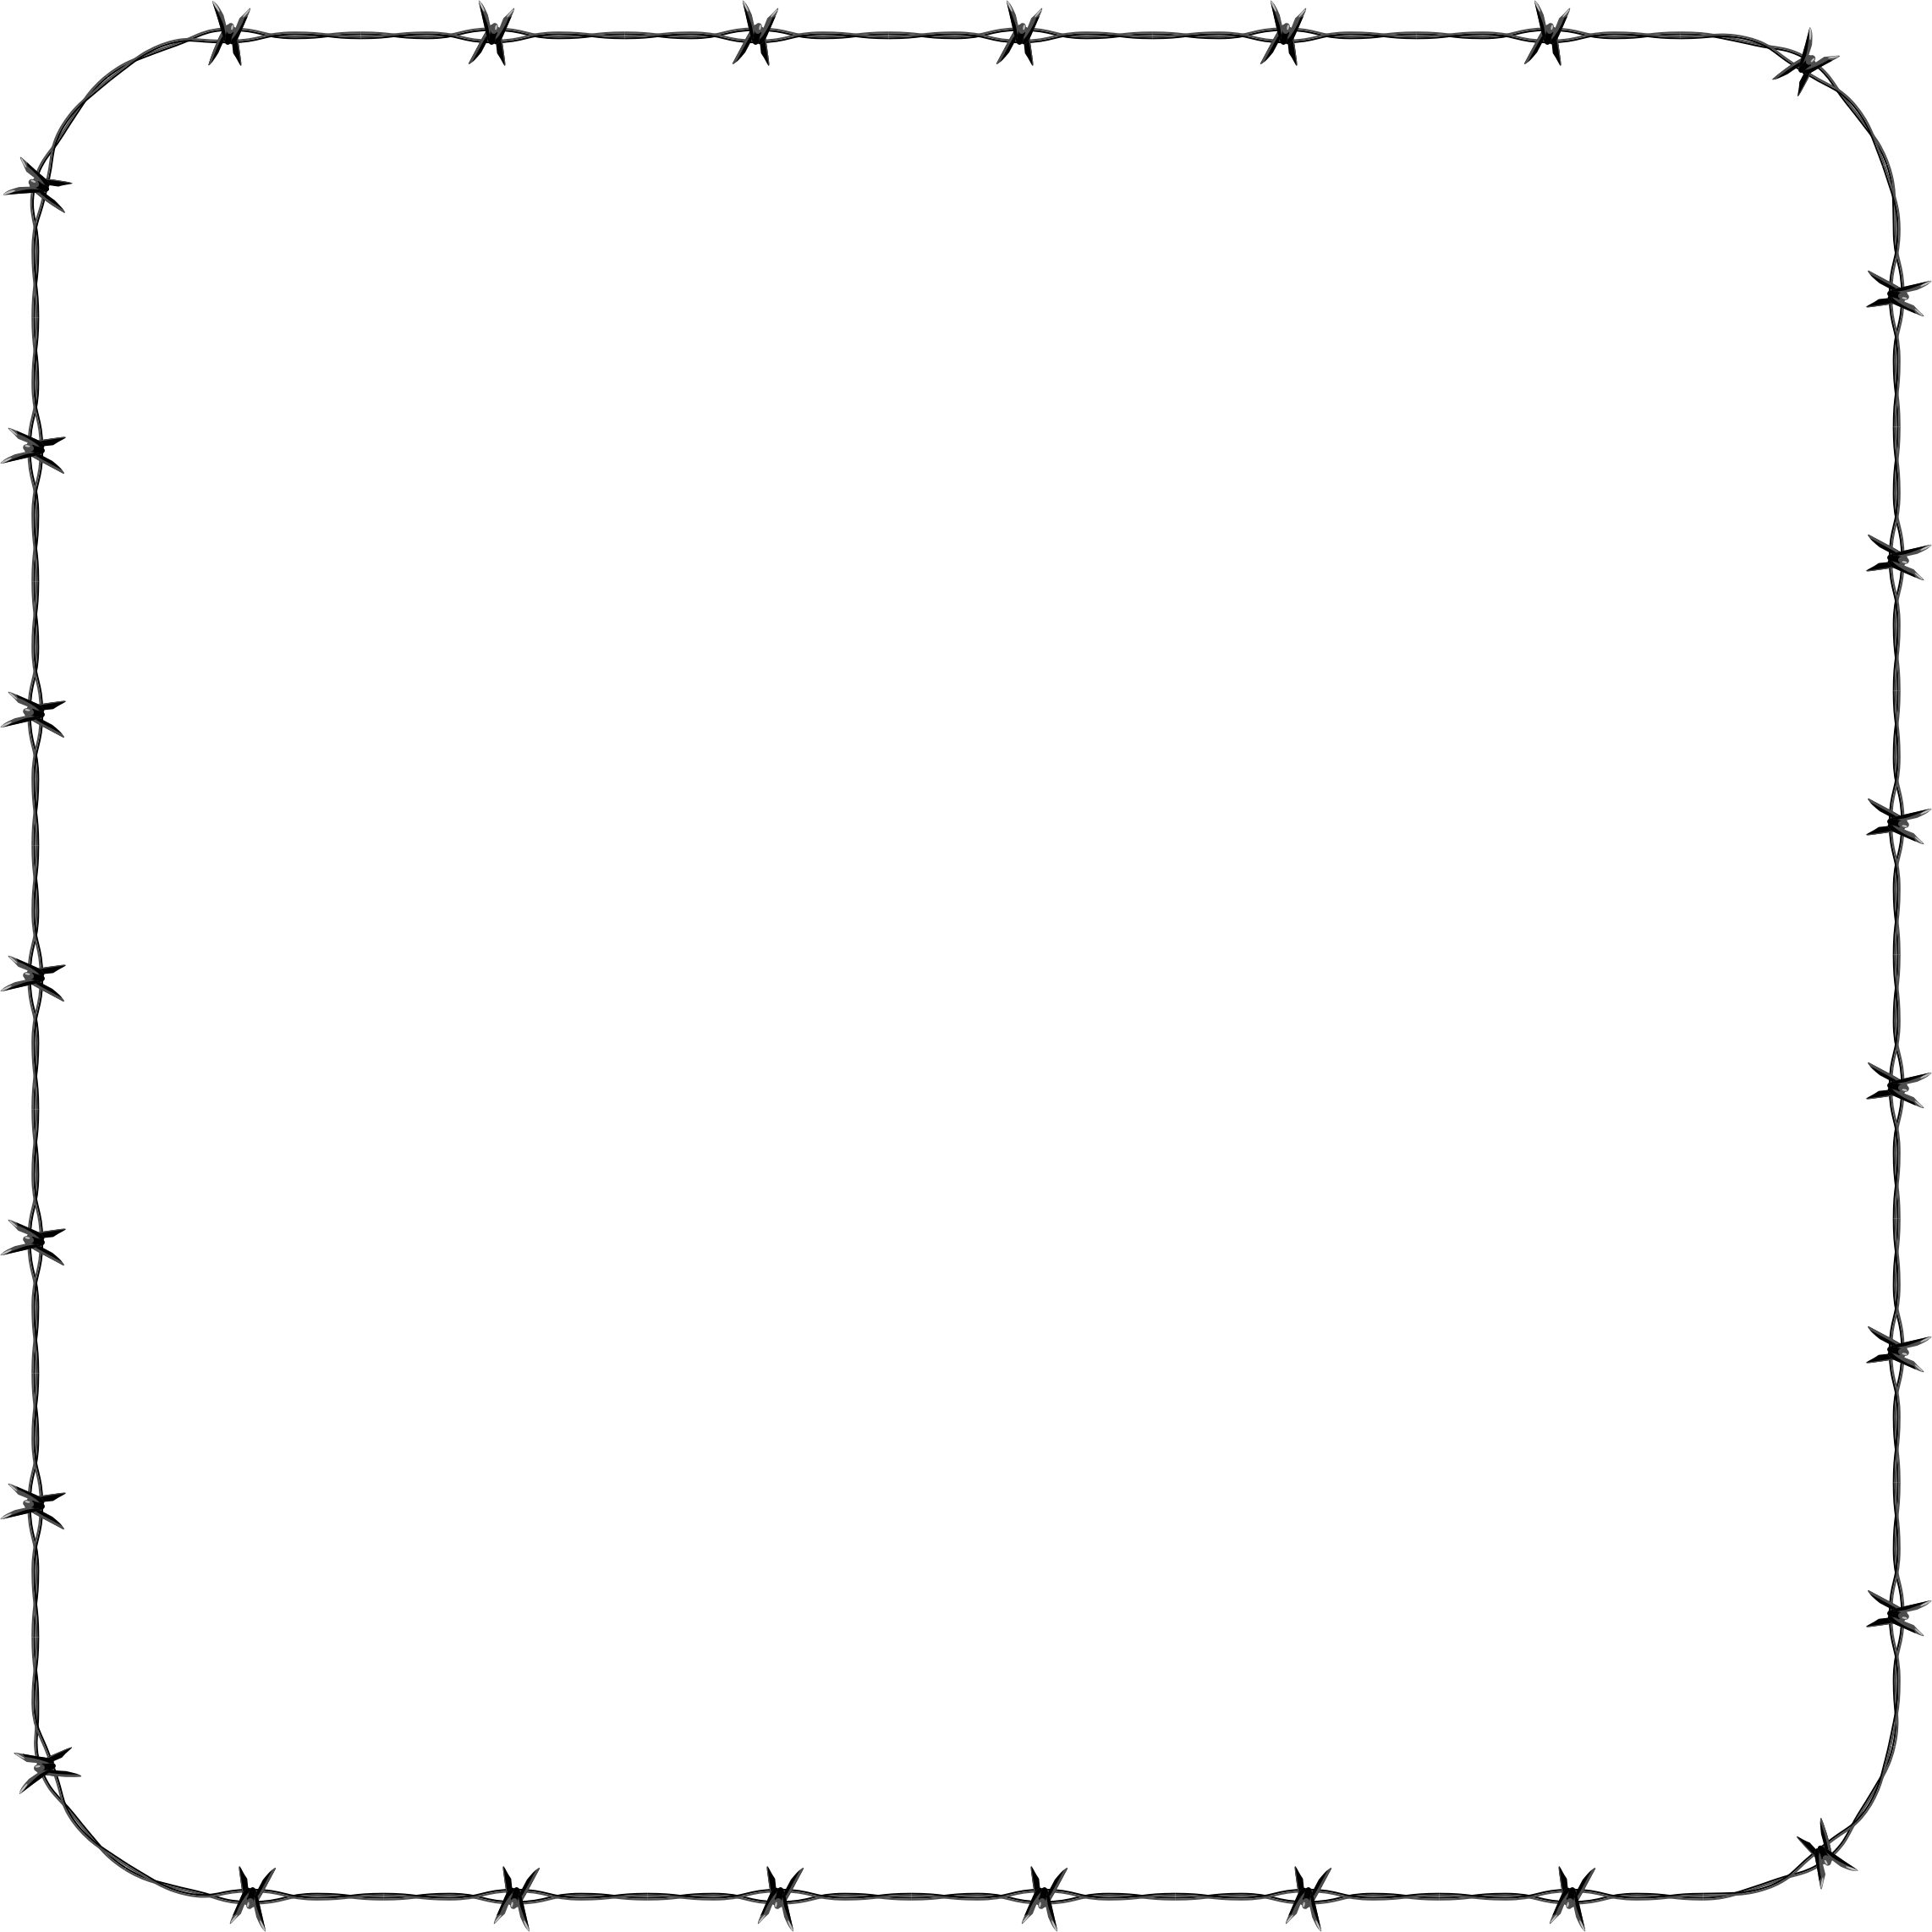 Barbed Wire Rounded Square Frame Border by GDJ